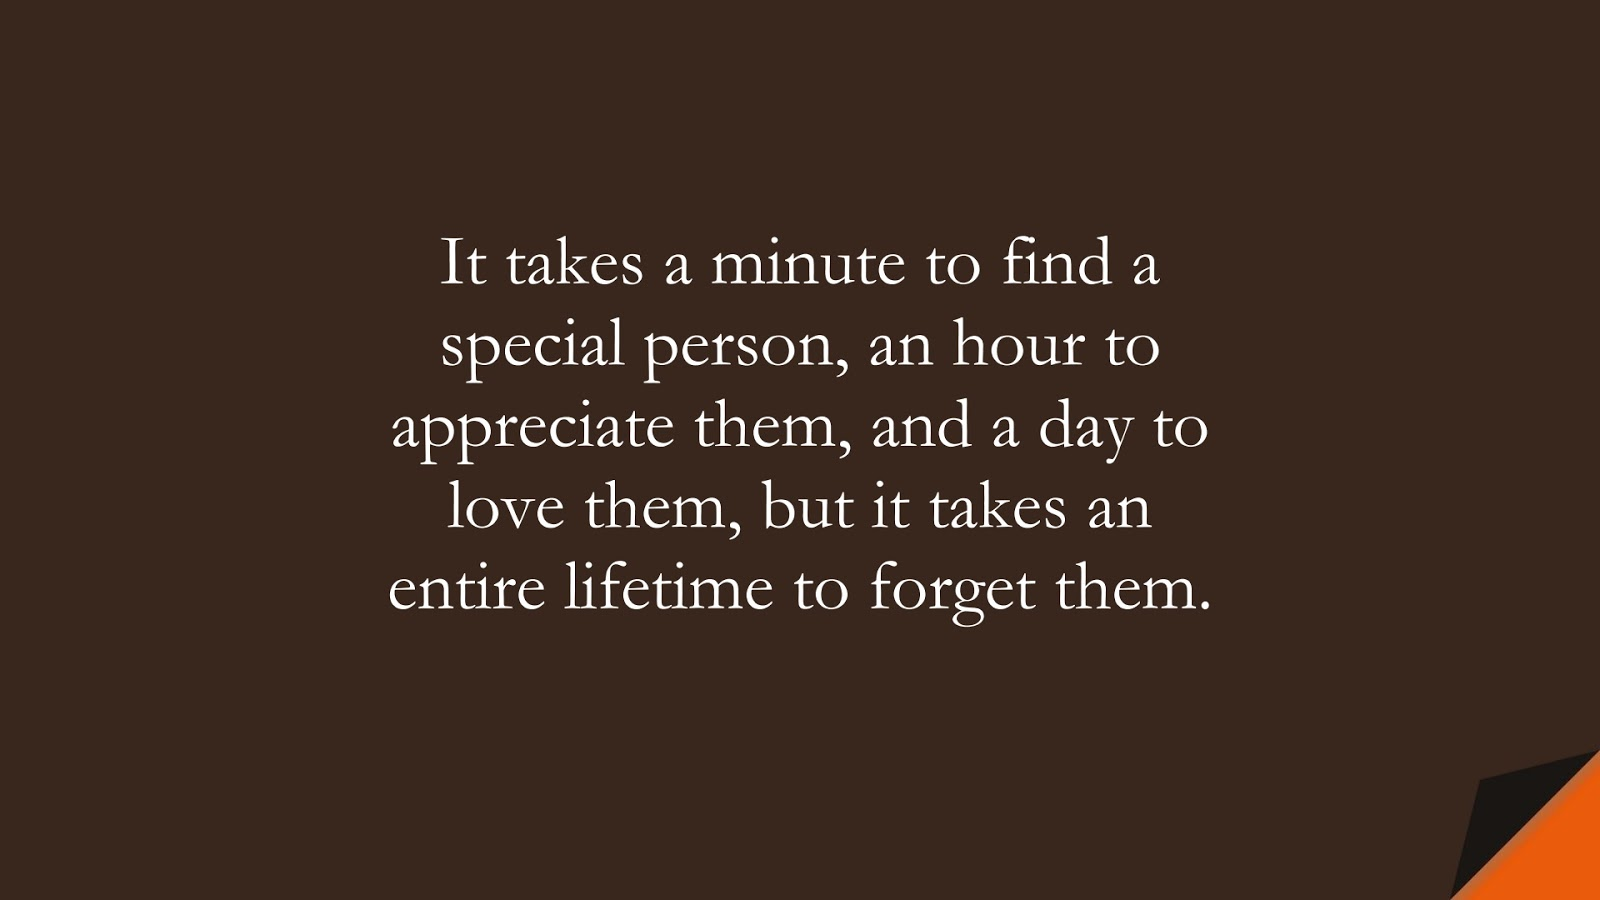 It takes a minute to find a special person, an hour to appreciate them, and a day to love them, but it takes an entire lifetime to forget them.FALSE